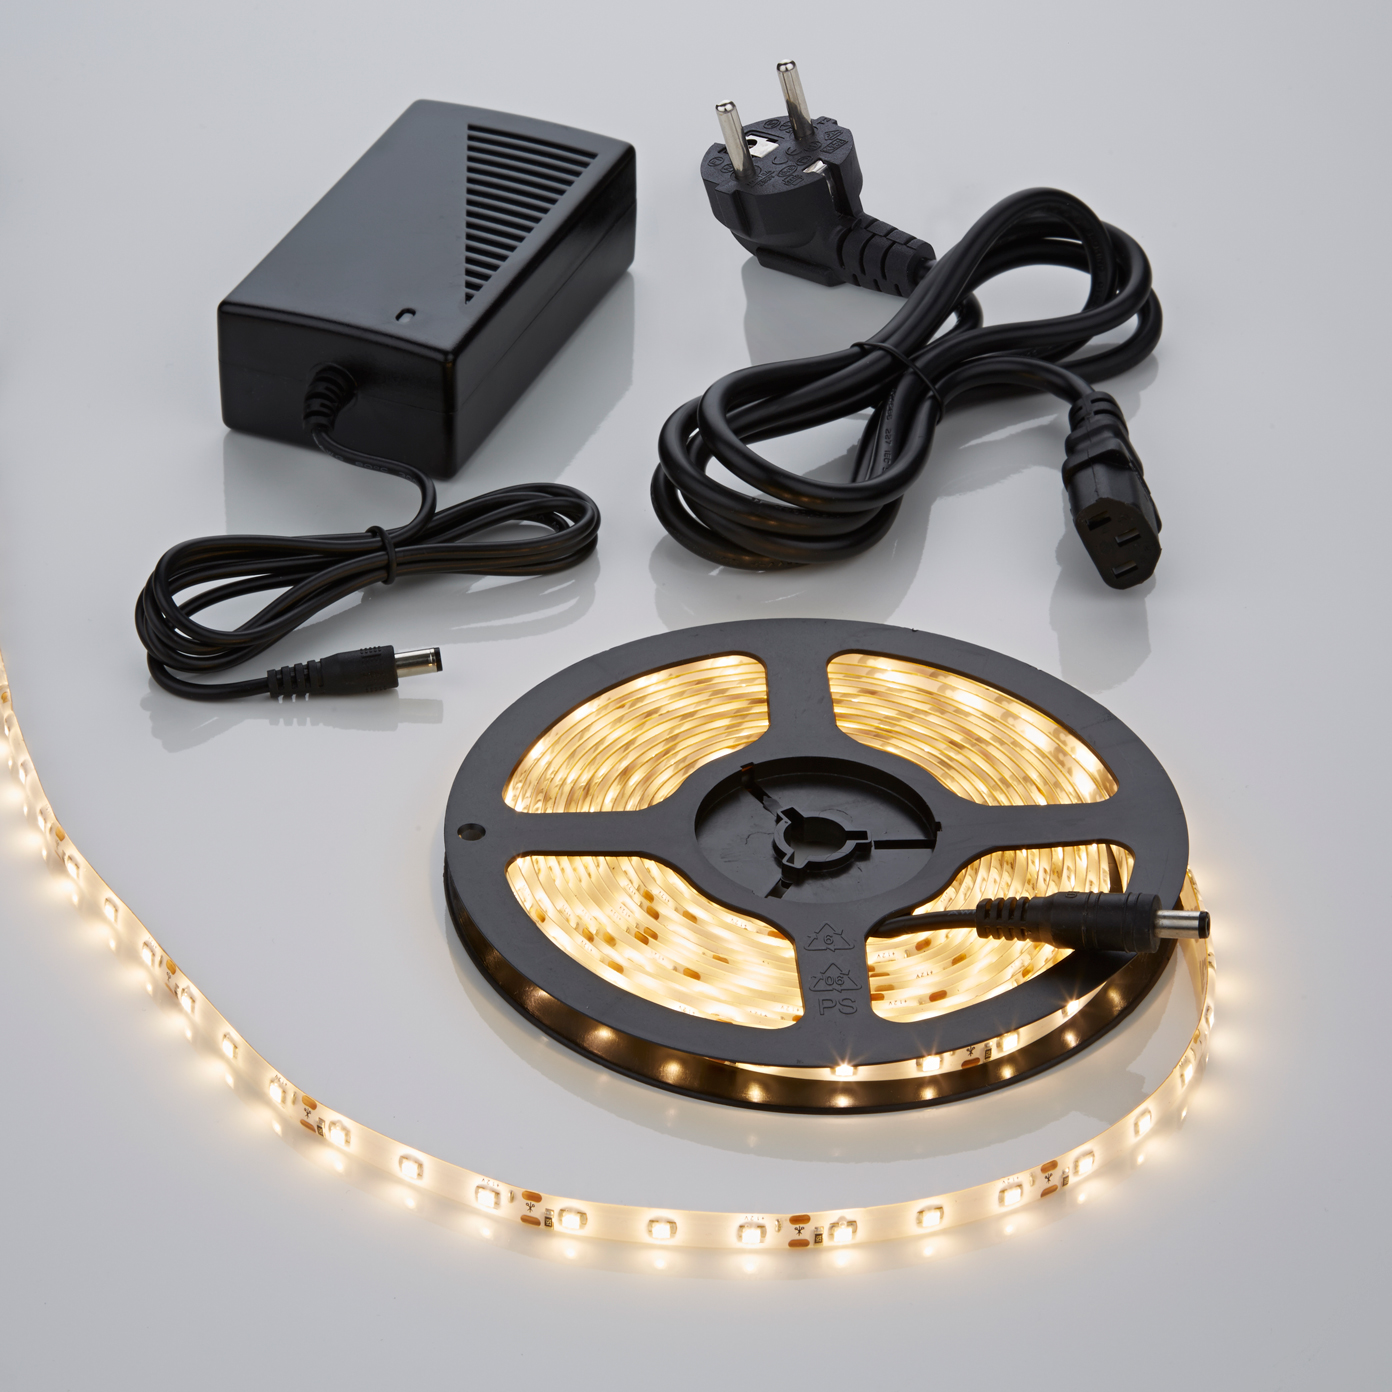 Biard Waterbestendige 3528 LED strip verlichting incl Driver & Kabel - 5 meter - Warm Wit